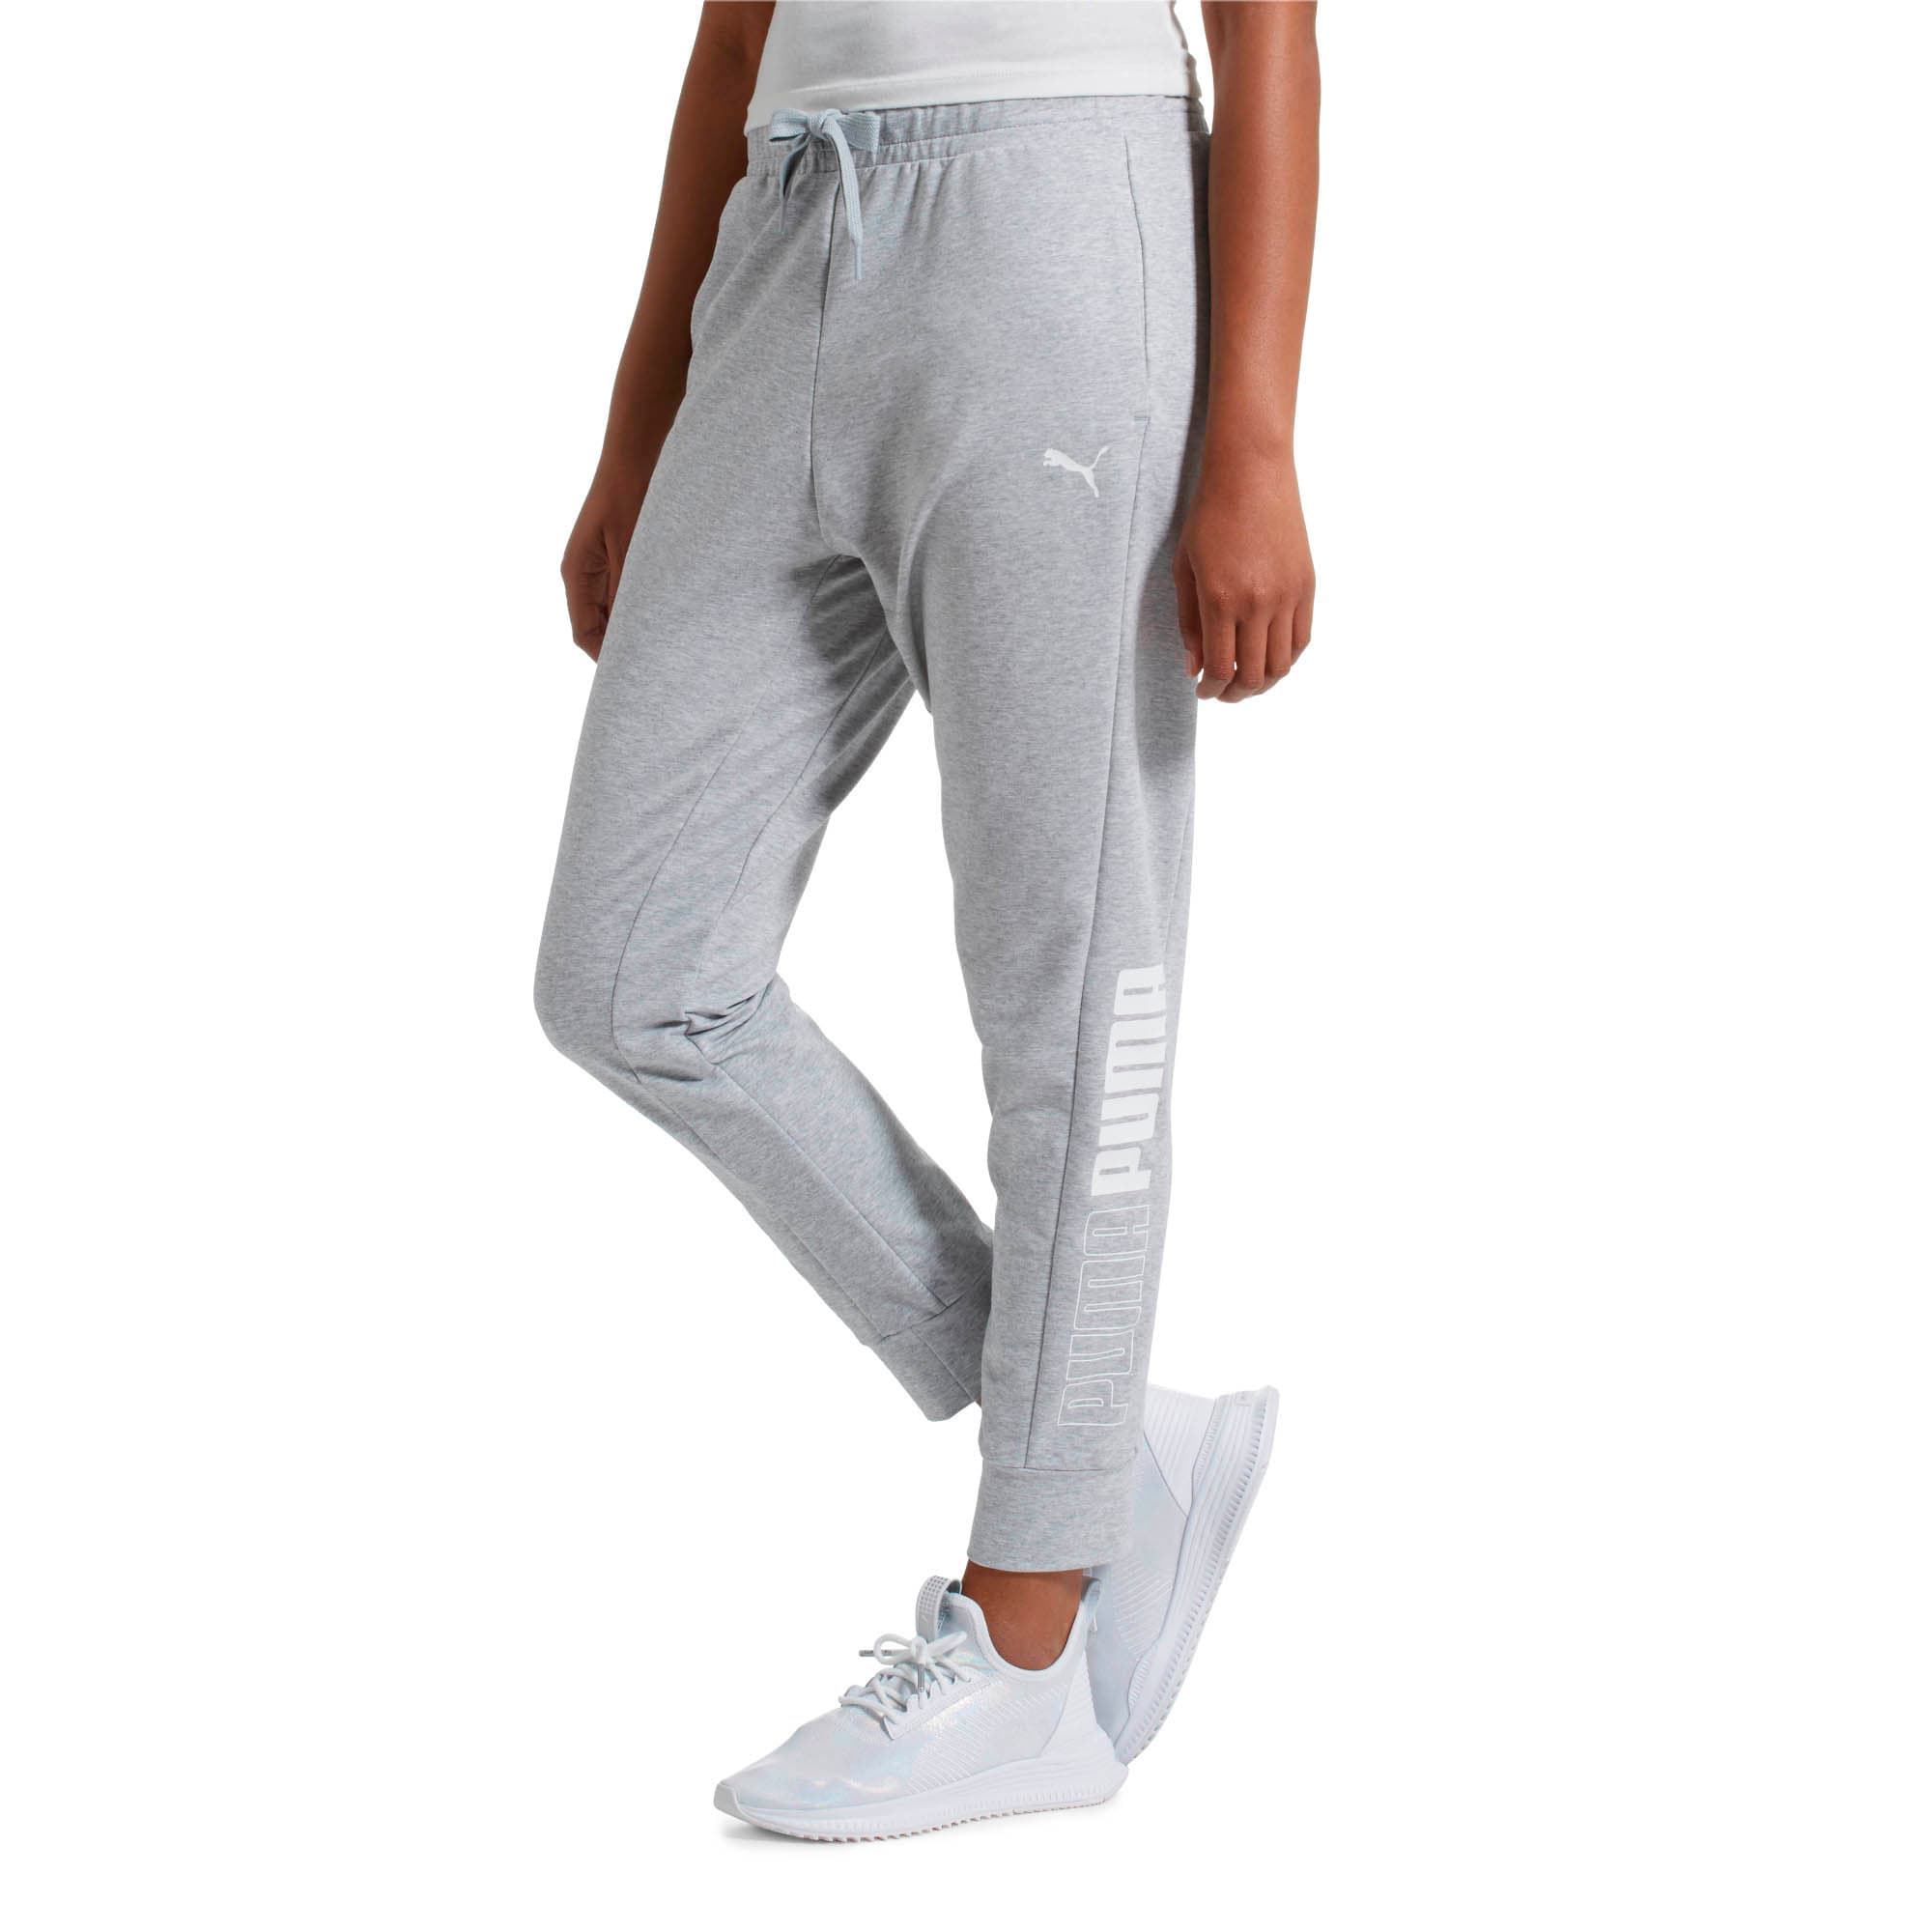 Thumbnail 2 of Modern Sports Women's Track Pants, Light Gray Heather, medium